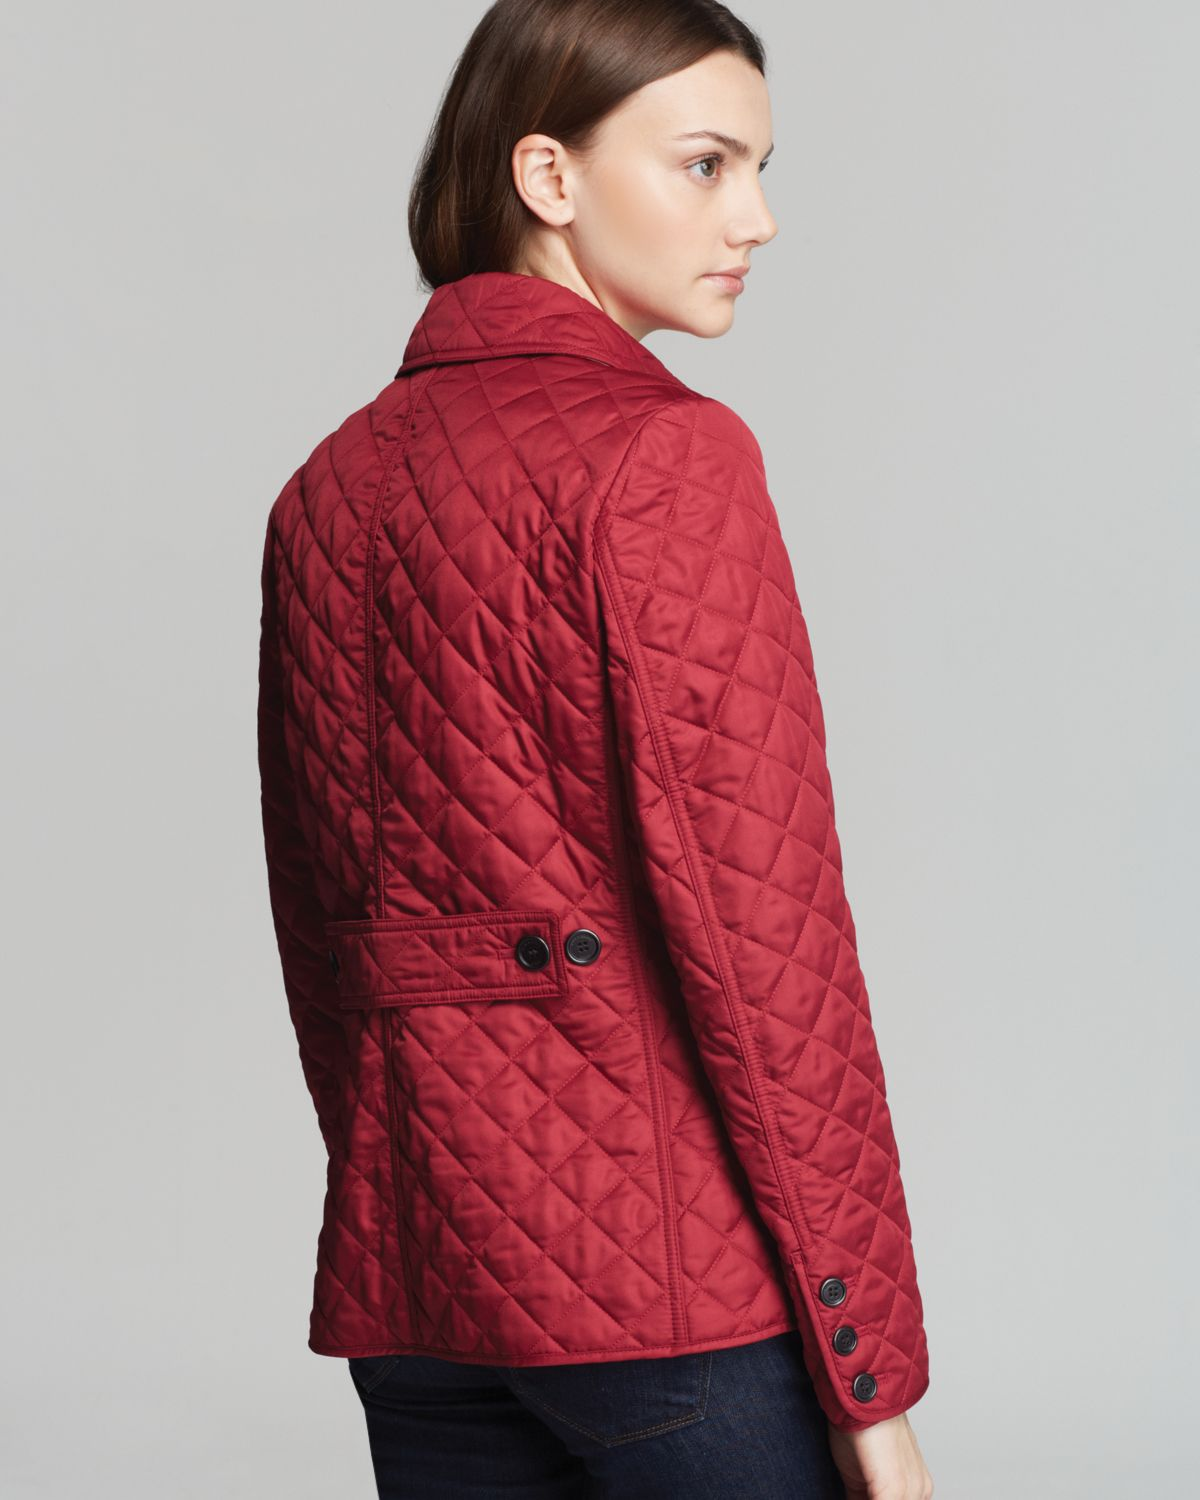 Lyst - Burberry Brit Copford Quilted Jacket in Gray : red burberry quilted jacket - Adamdwight.com